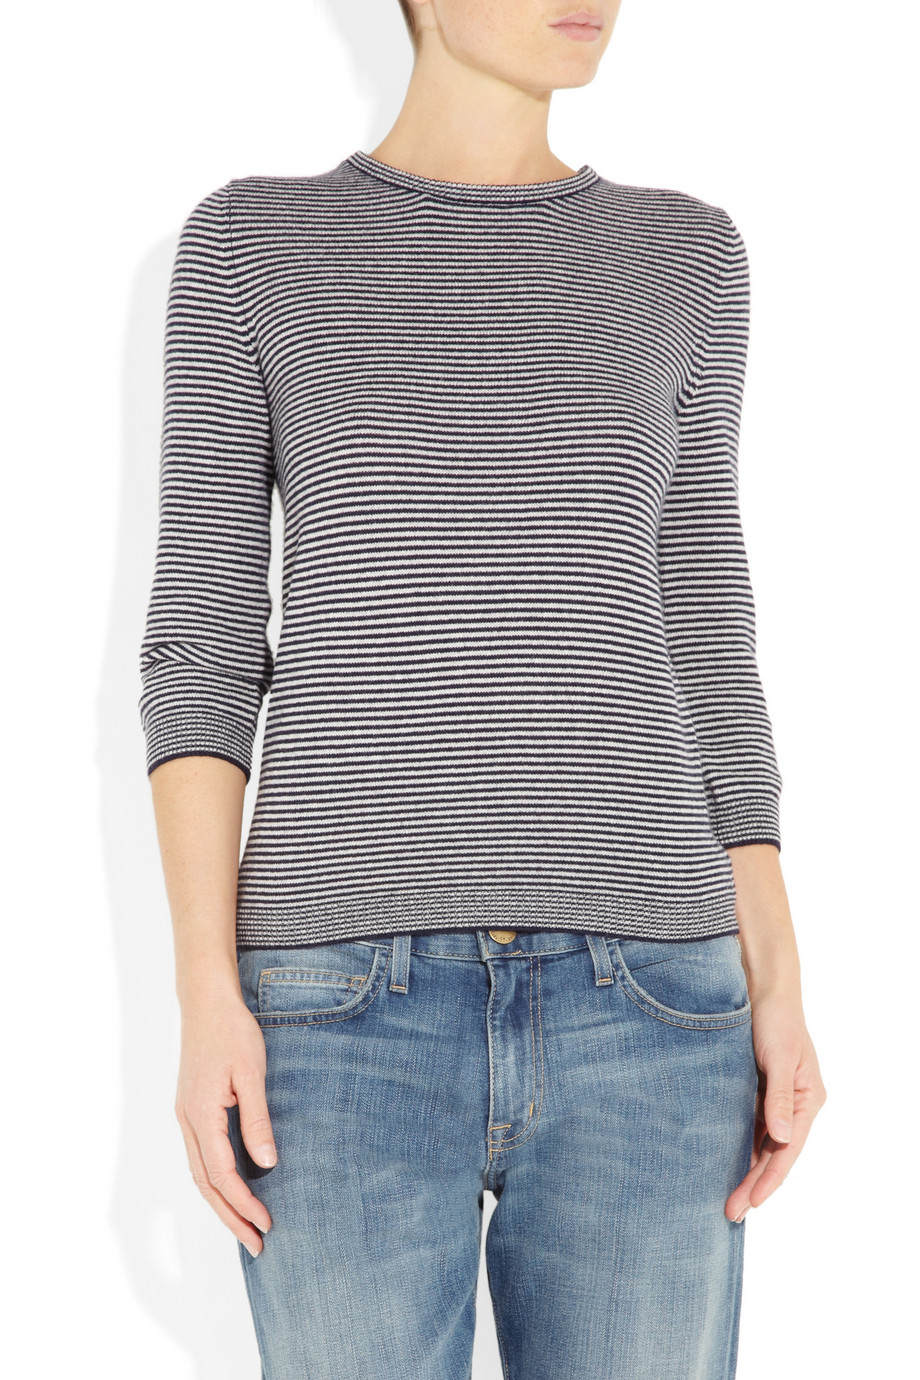 marc by marc jacobs sonia striped cashmere sweater in gray lyst. Black Bedroom Furniture Sets. Home Design Ideas